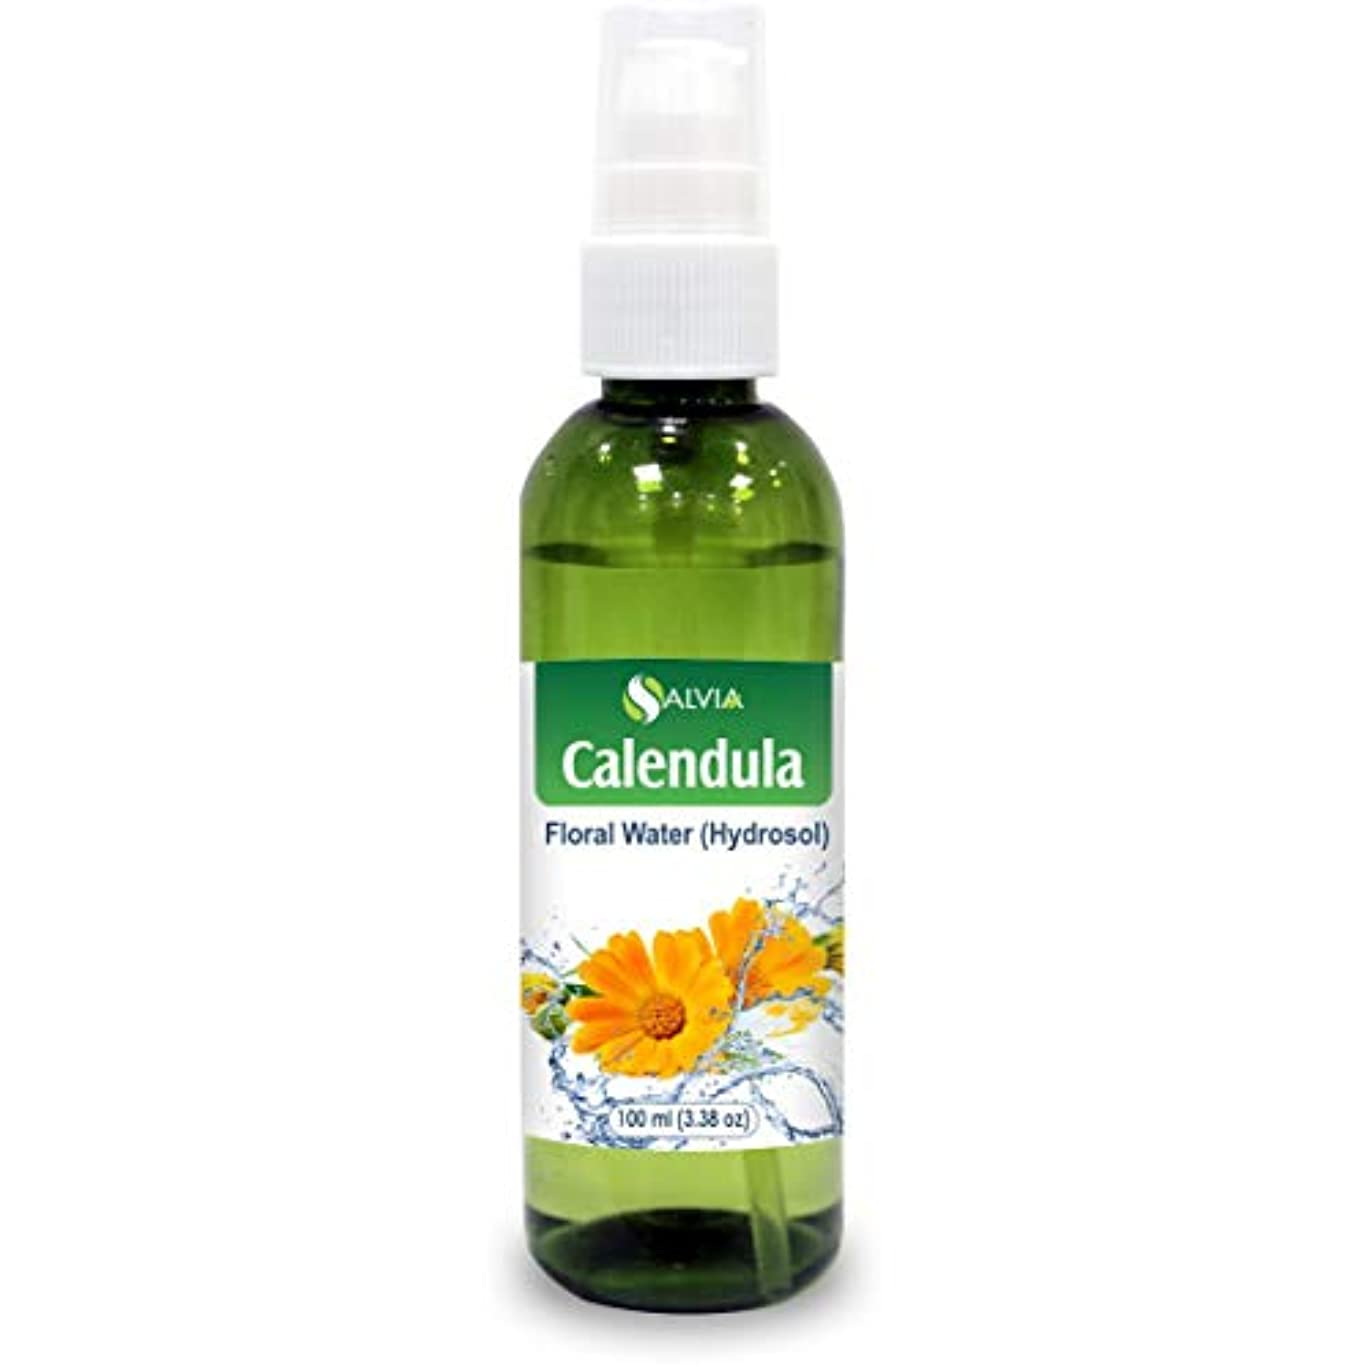 Calendula Floral Floral Water 100ml (Hydrosol) 100% Pure And Natural